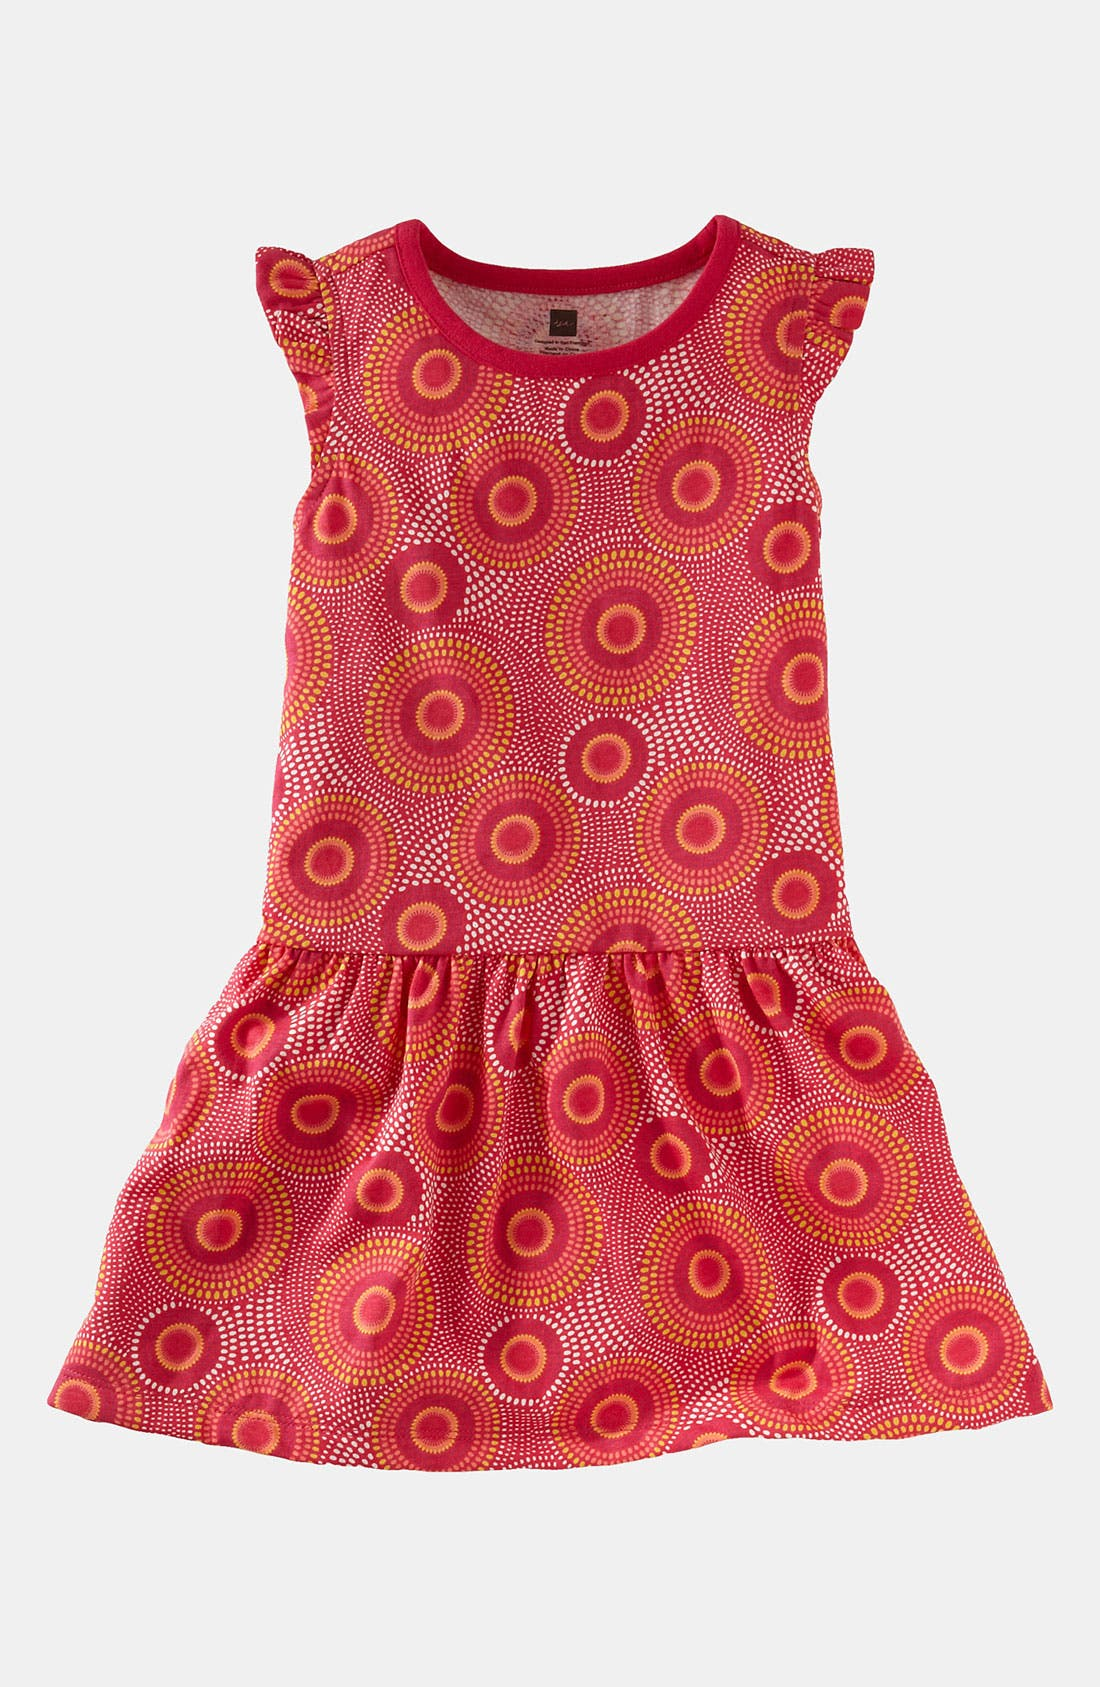 Main Image - Tea Collection 'Elm' Flutter Dress (Little Girls & Big Girls)